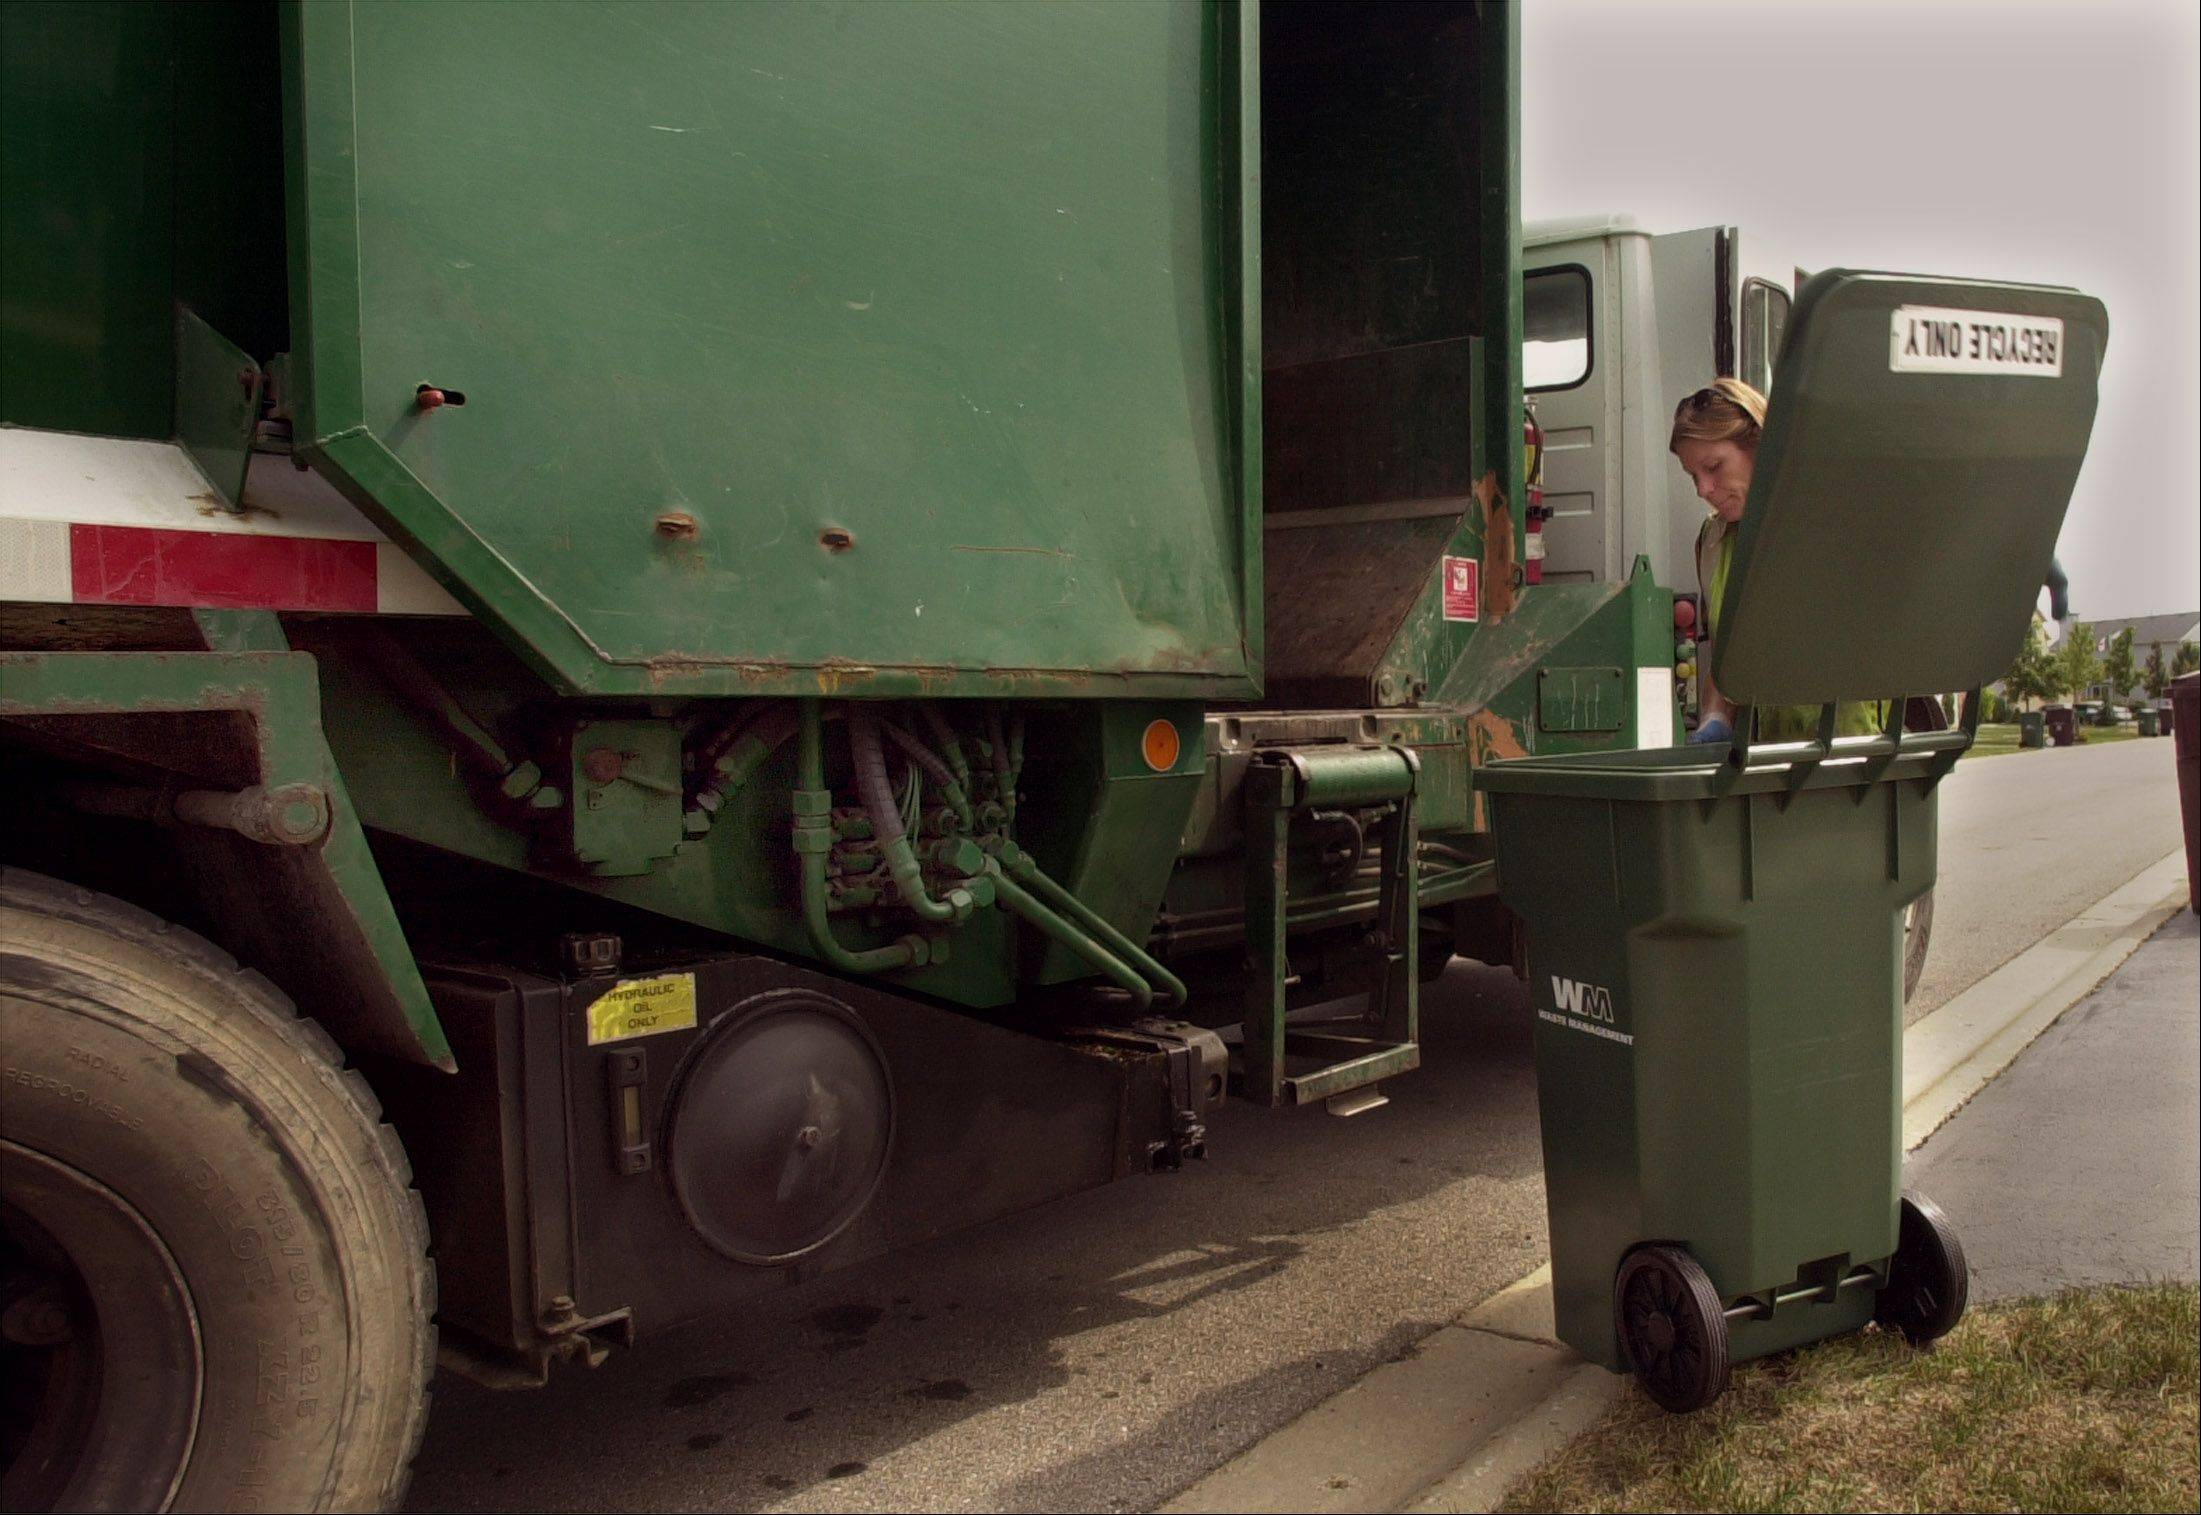 Modifications to the Lake County solid waste and recycling ordinance that take effect Jan. 1 make it mandatory for haulers in the unincorporated area to provide recycling service to those homes that don�t now get it.